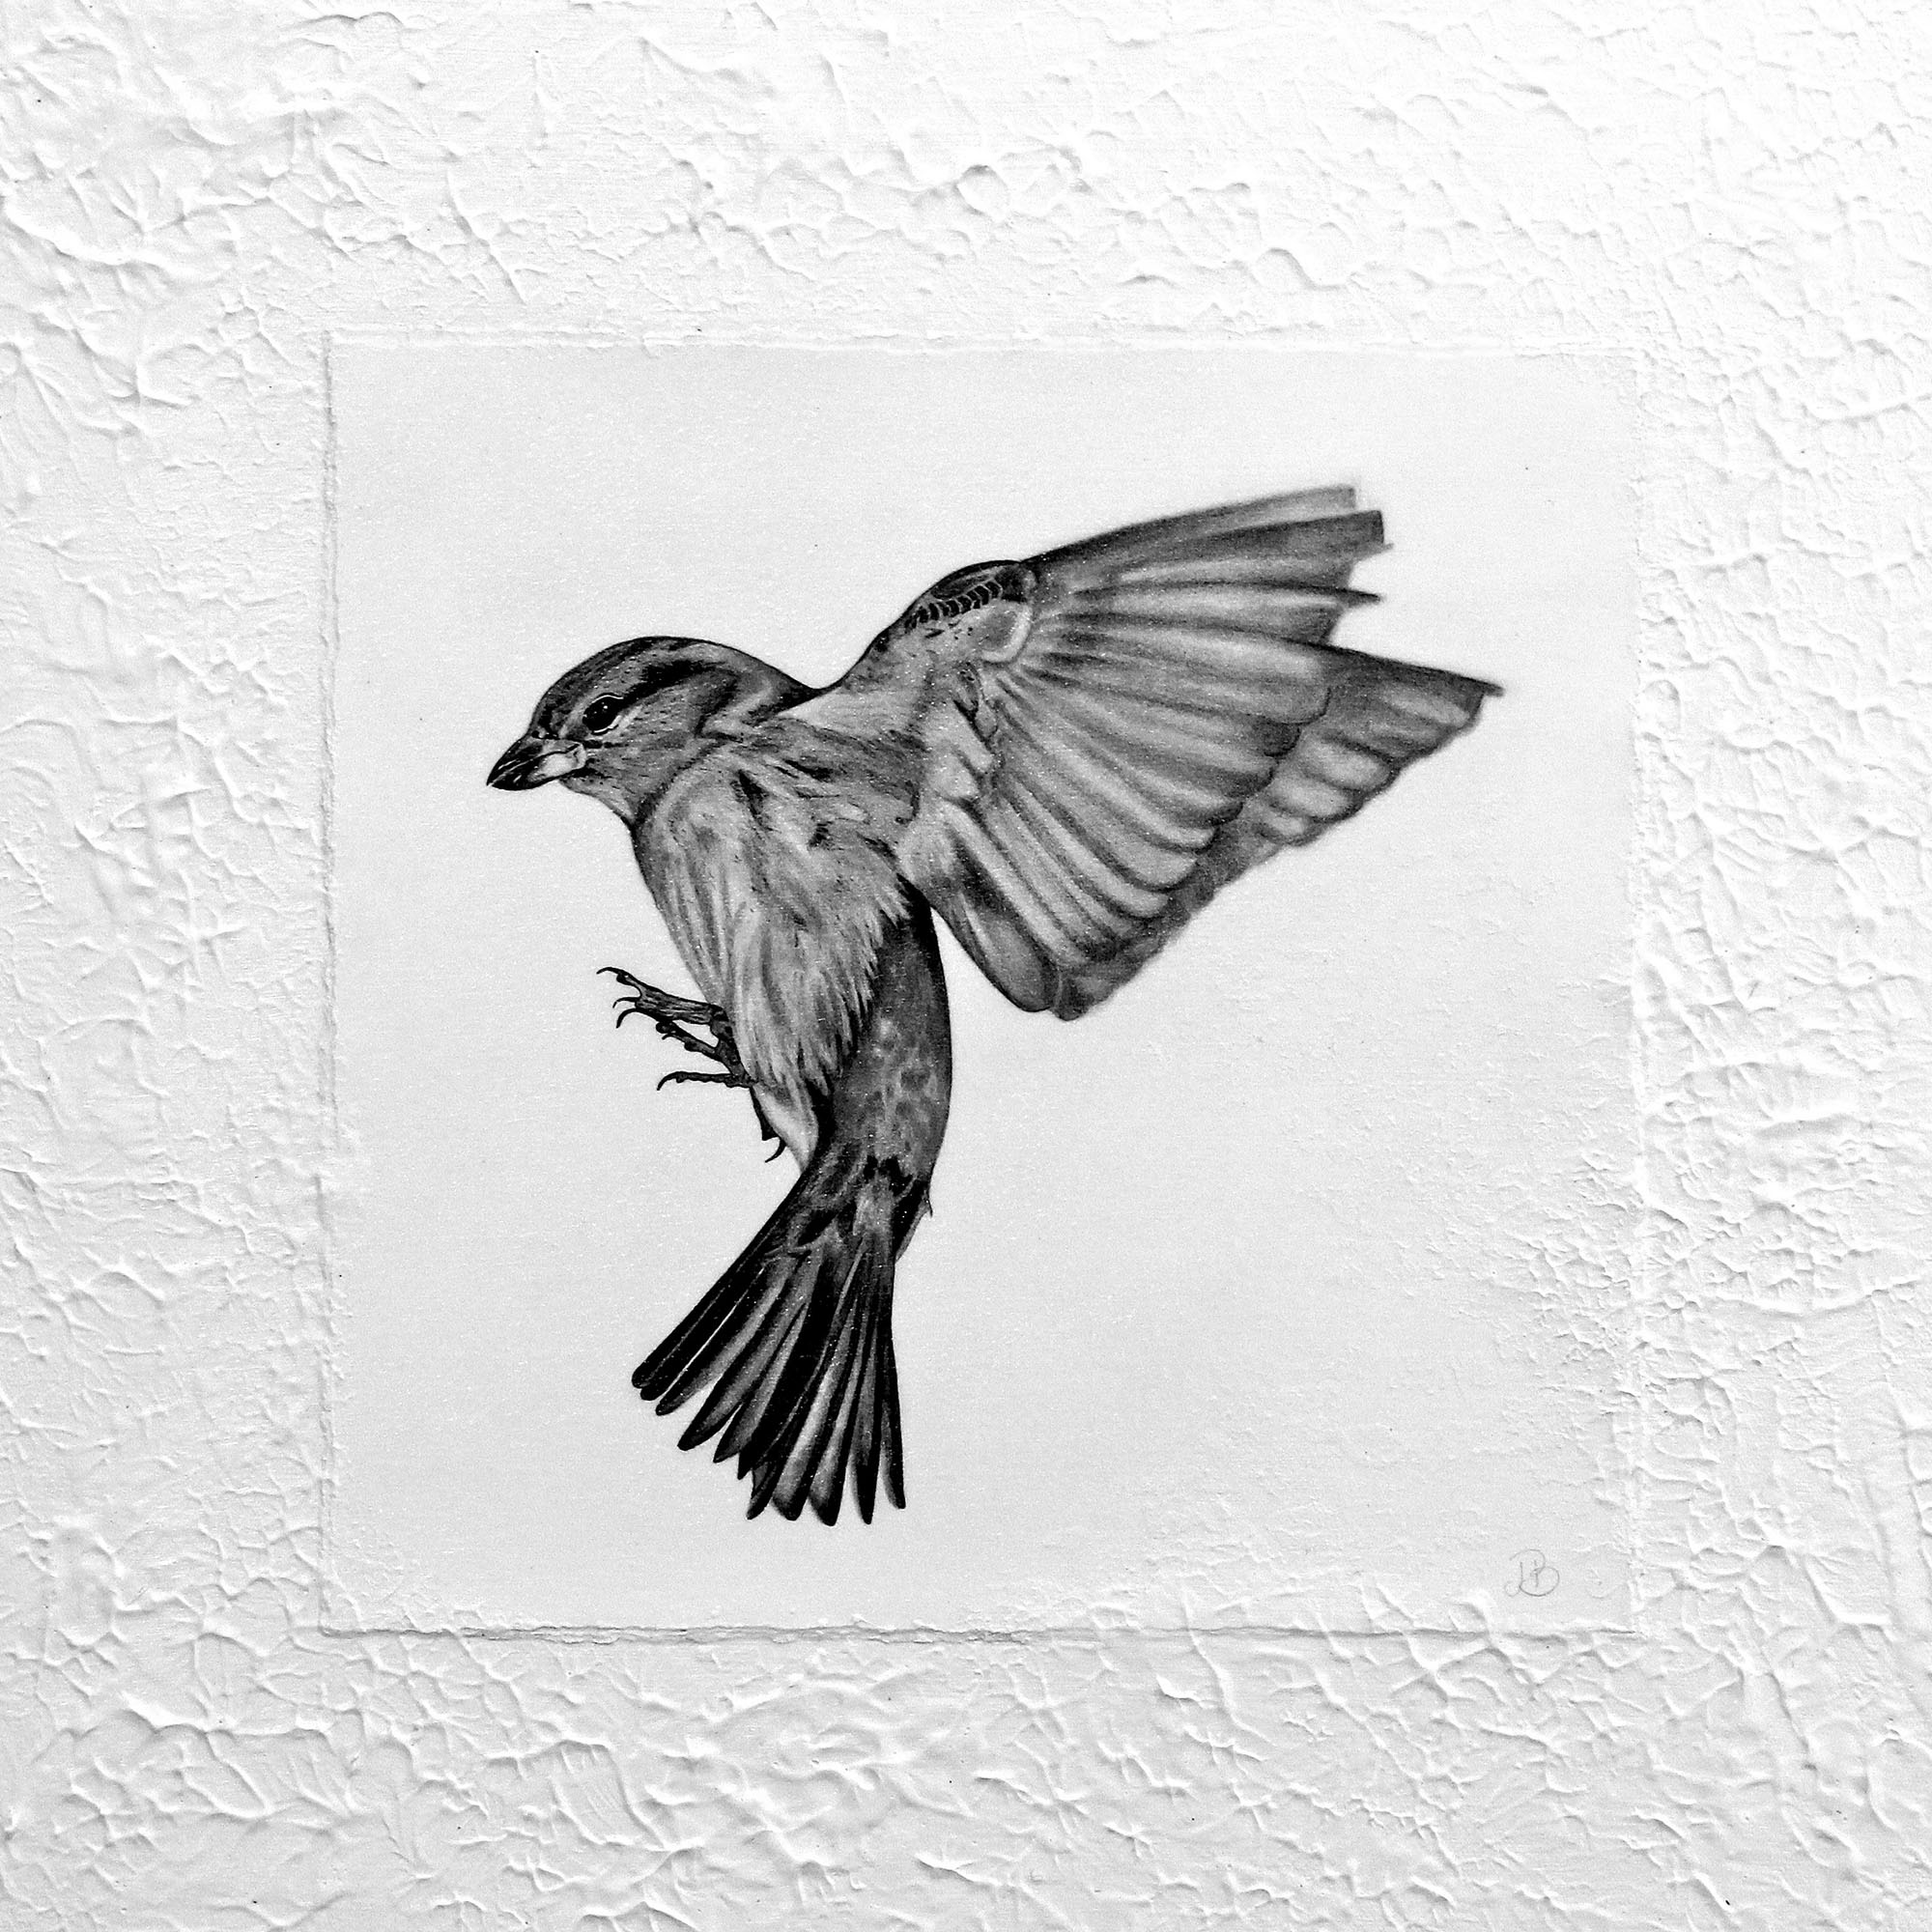 - 'Nowhere To Land'60 x 60cmGraphite on paper, adhered to painted canvas and sealed with a gel coating. Ready to hang.Also available as a print$450ENQUIRE